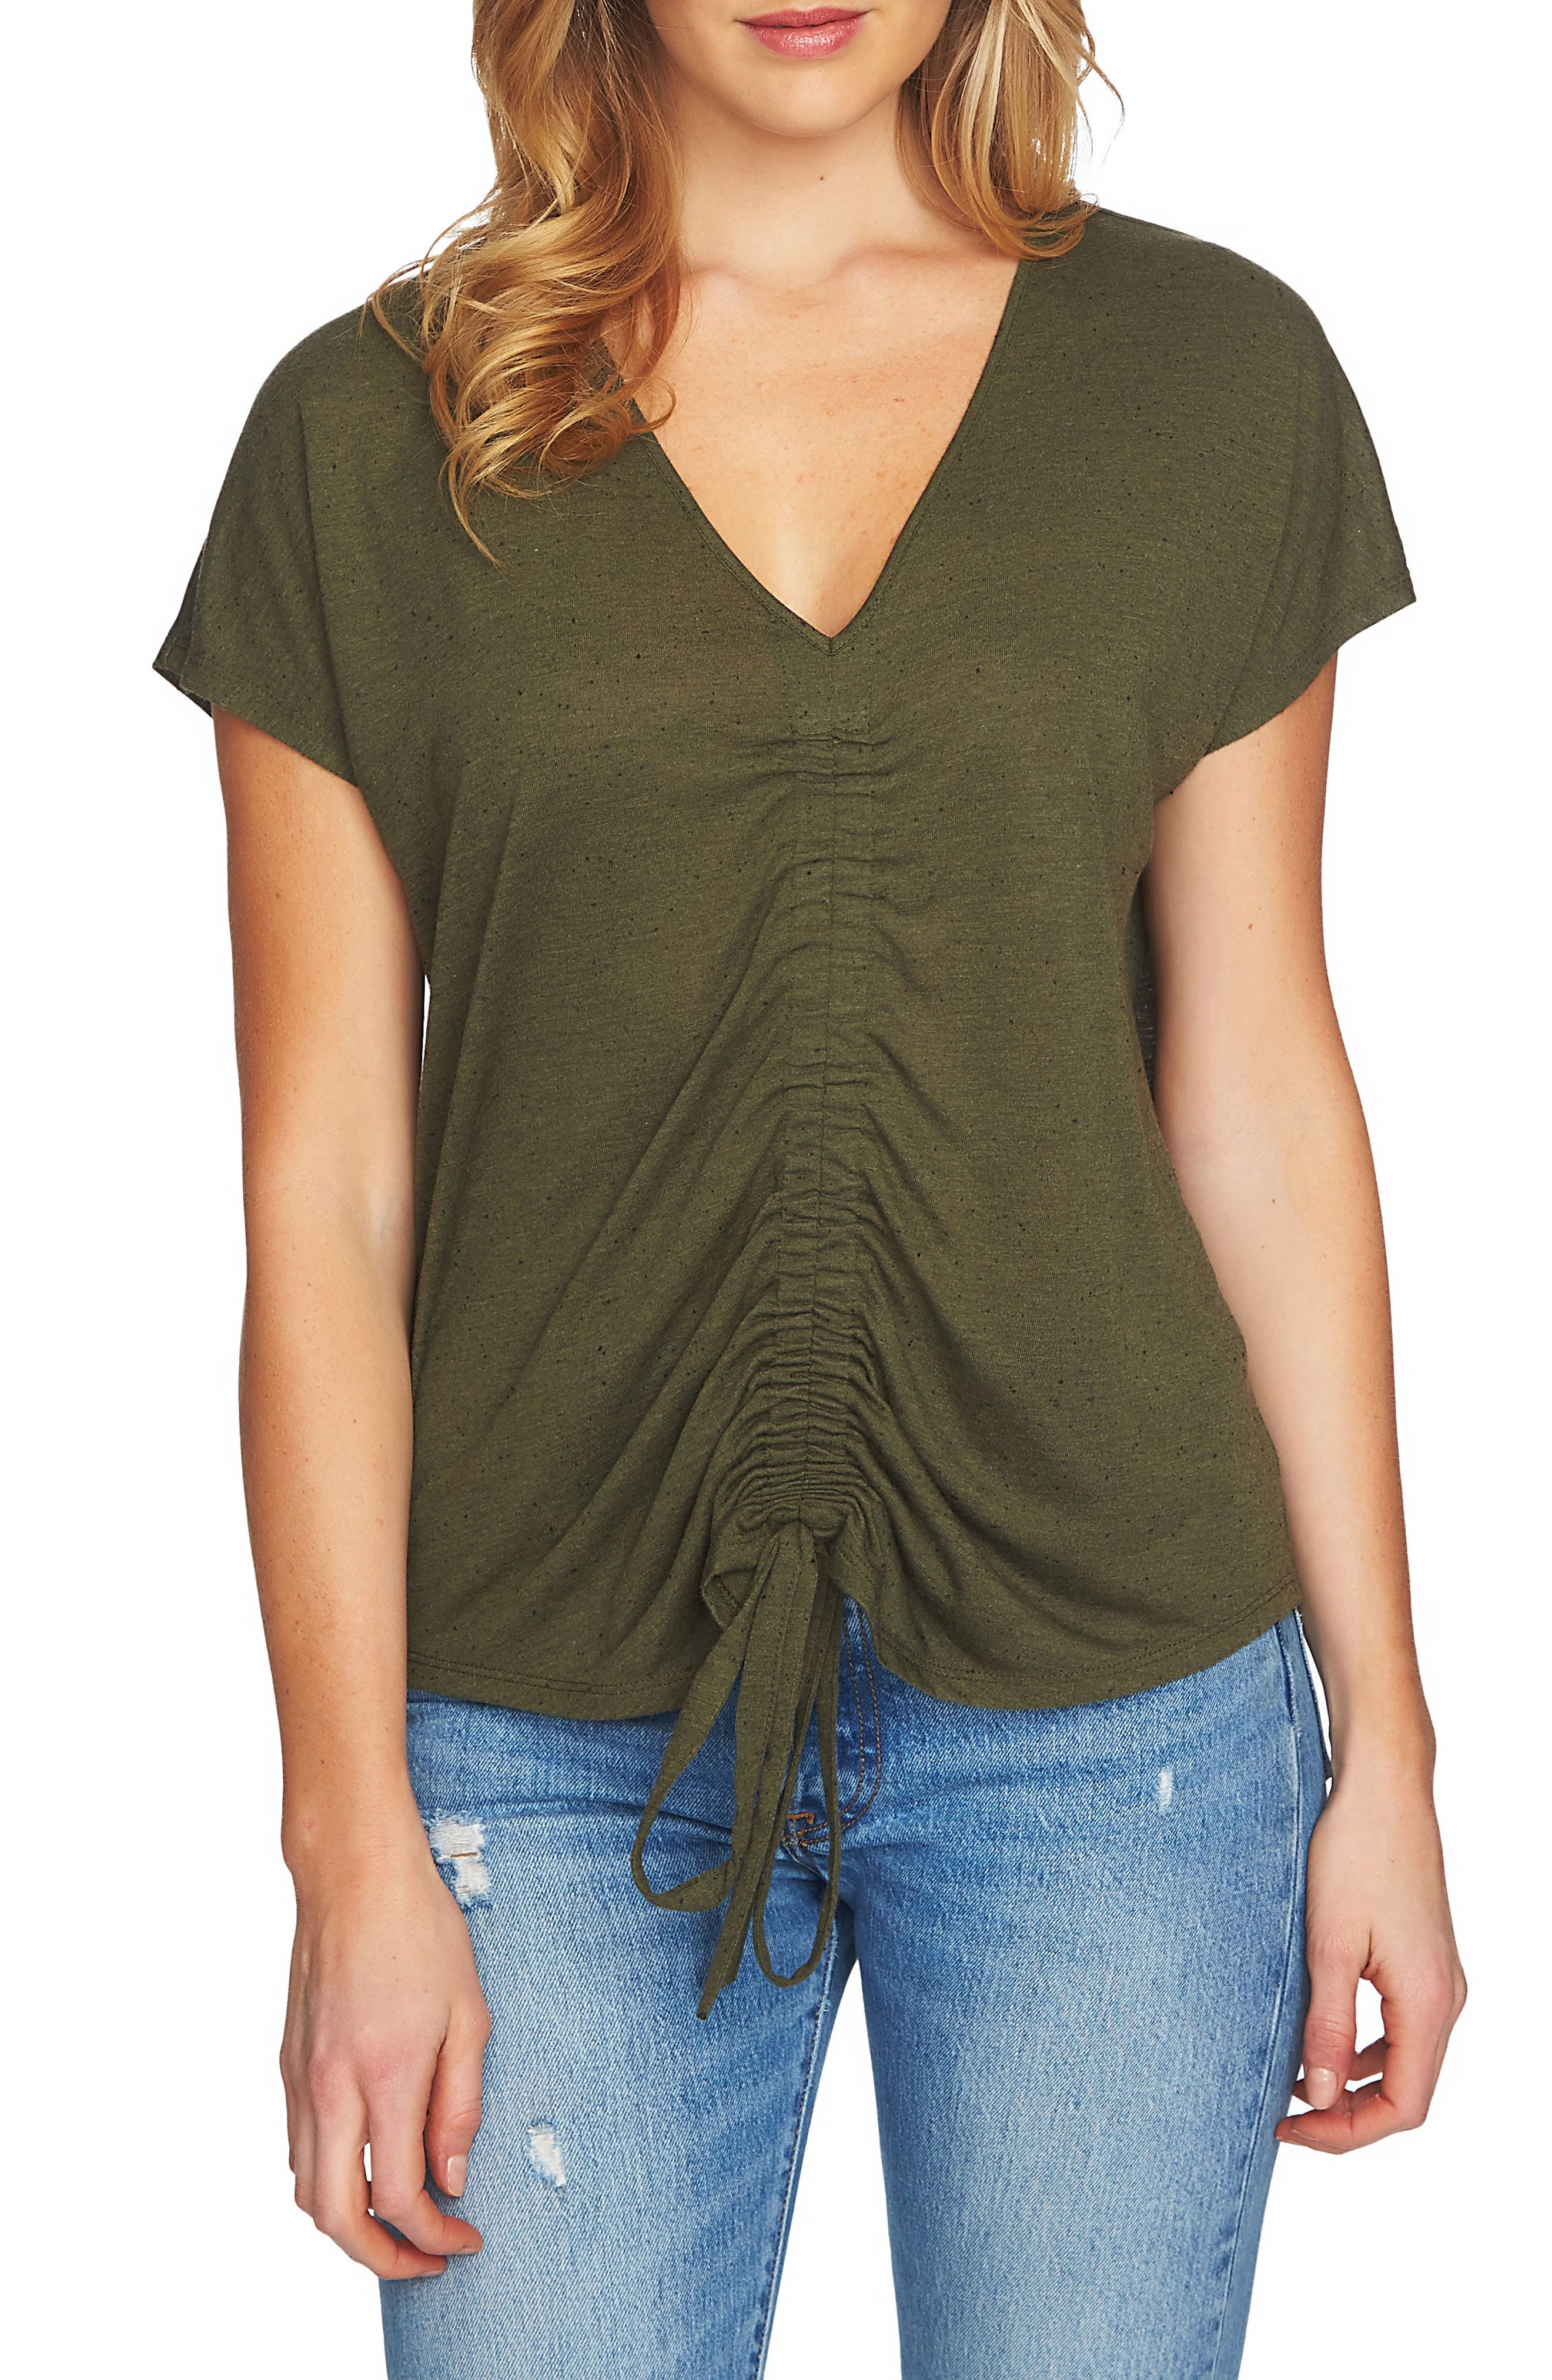 Speckle Cinch Front Knit Top,                         Main,                         color, 311-Olive Tree